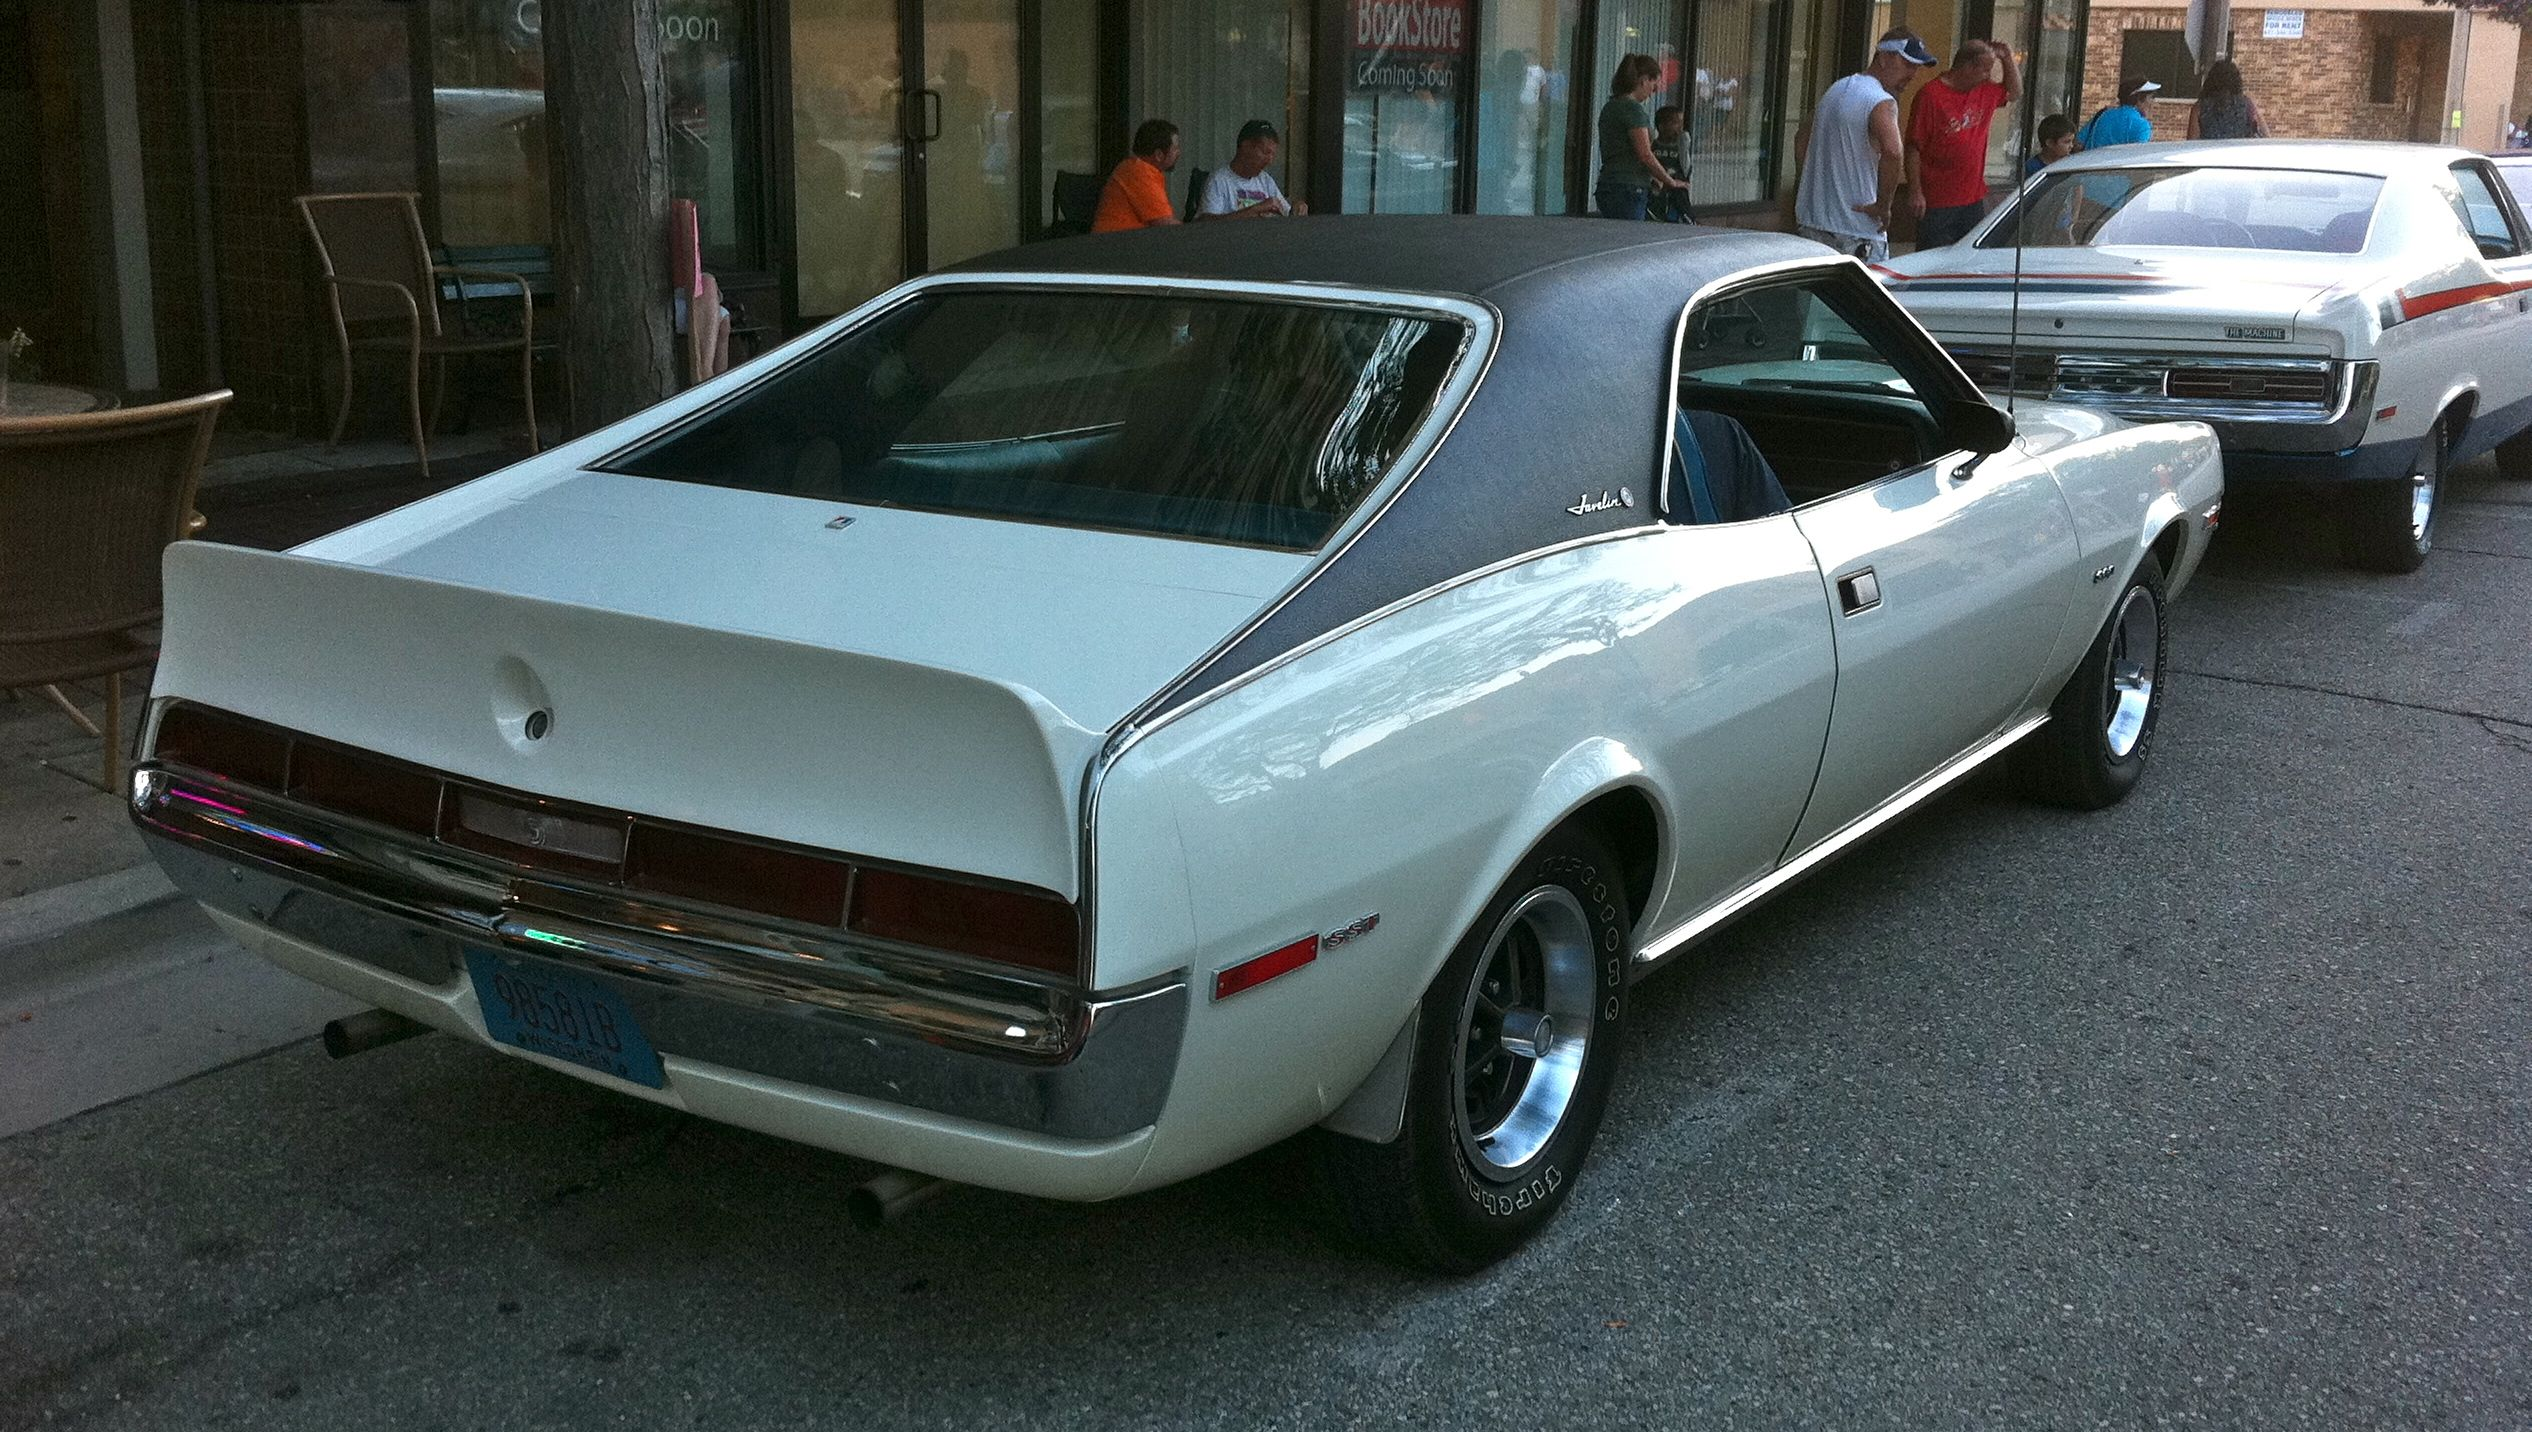 File:1970 AMC Javelin SST White Full Black Top Kenosha Rr  Craigslist Kenosha